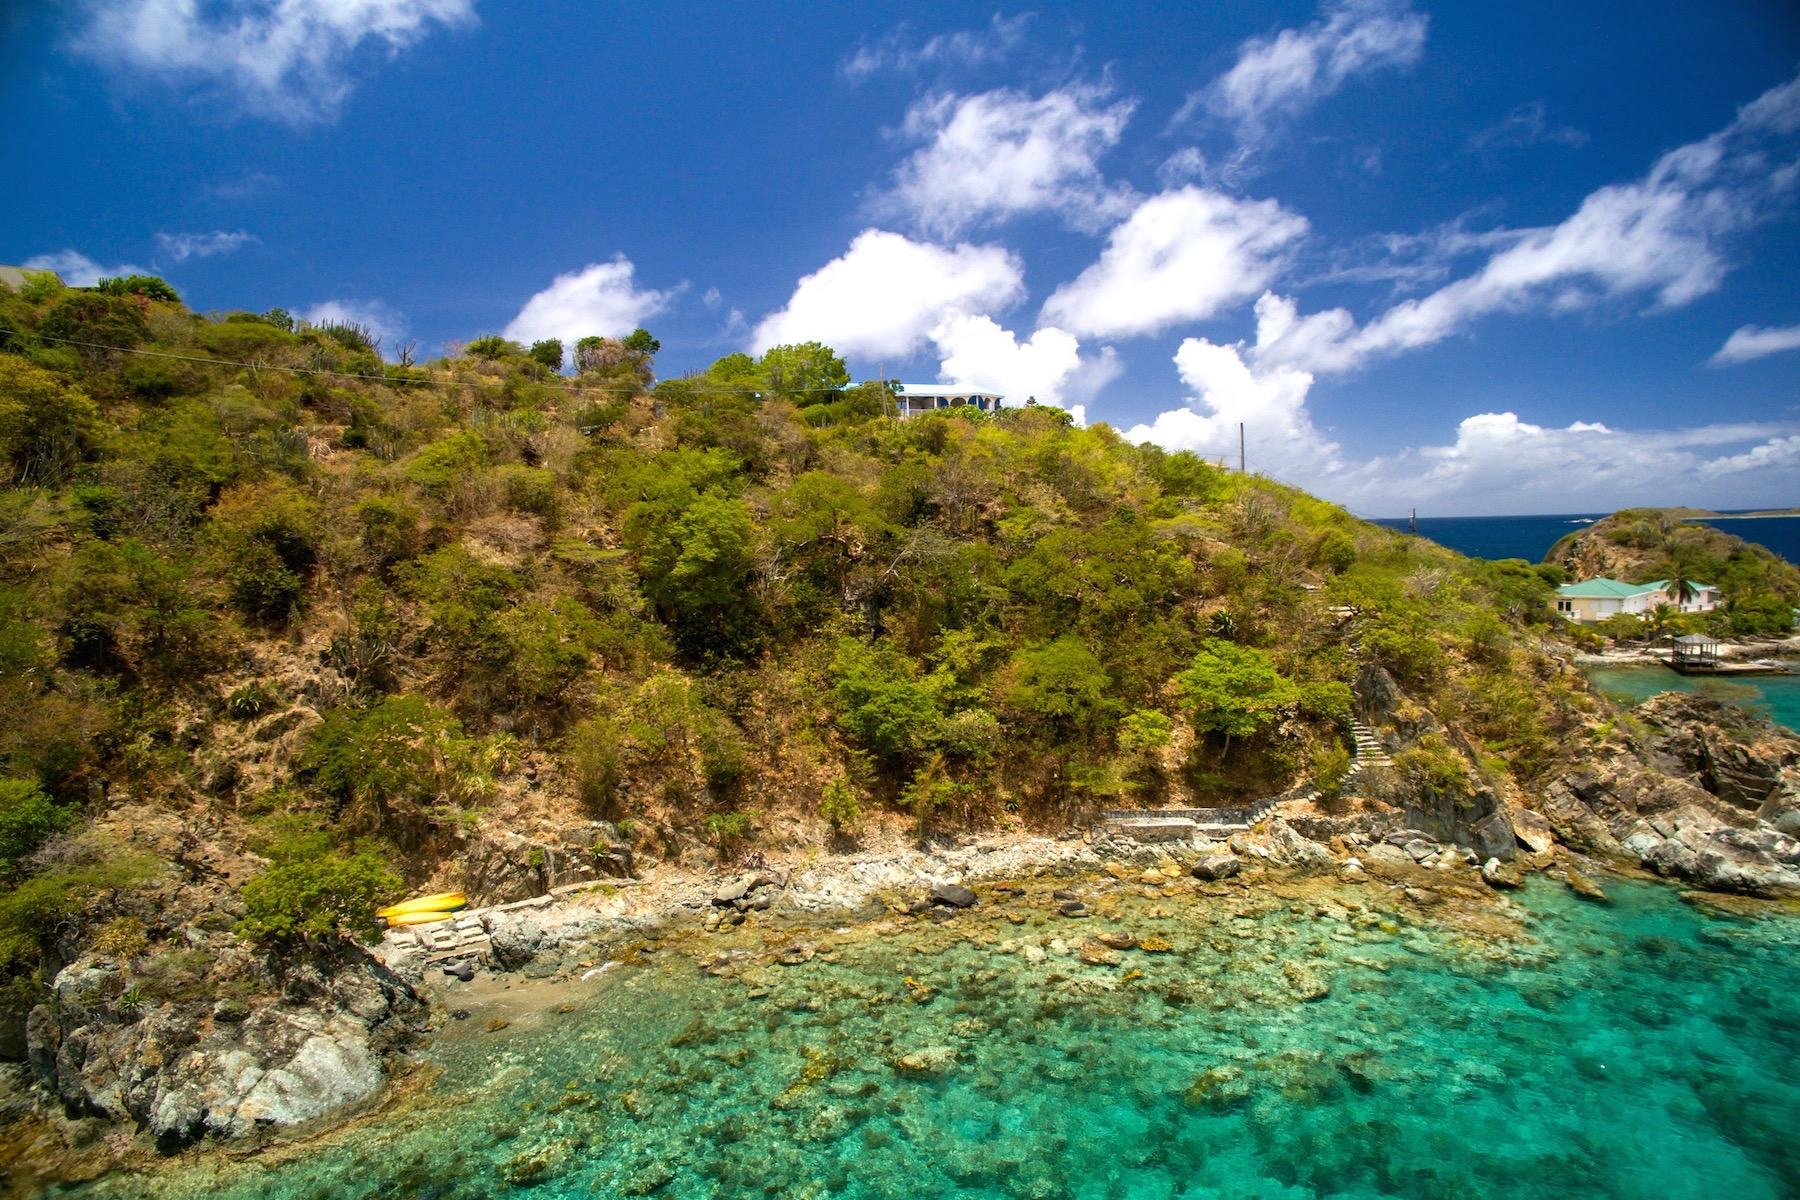 Land for Sale at 1 Rem Hansen Bay St. John St John, Virgin Islands 00830 United States Virgin Islands